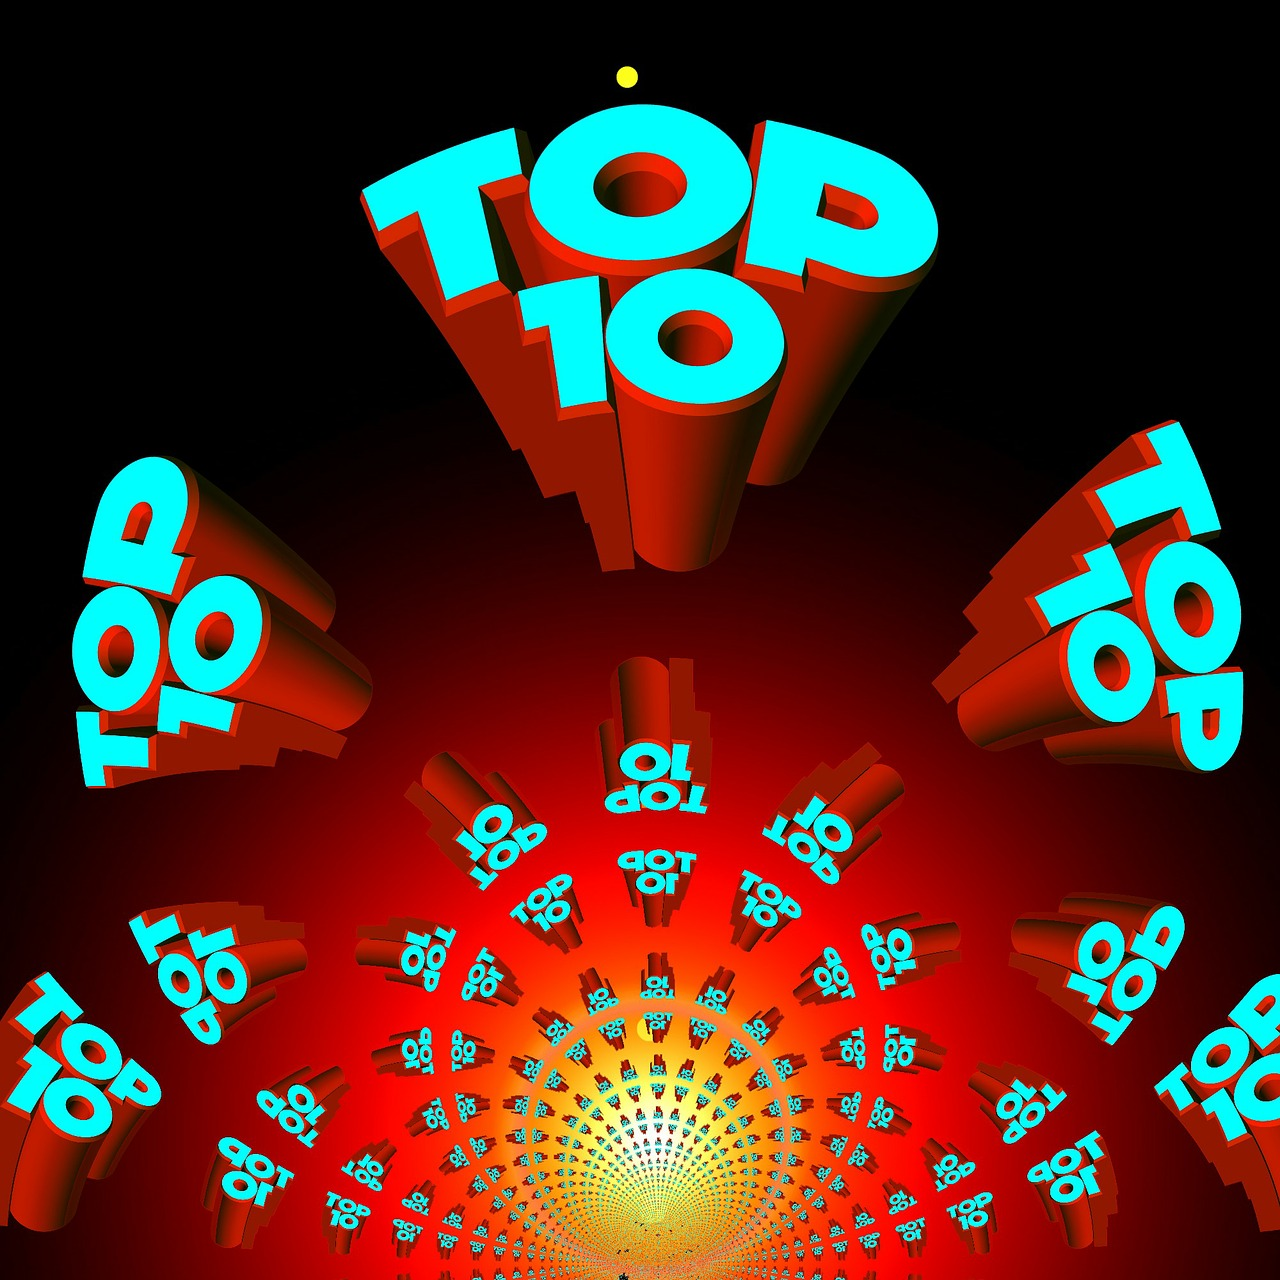 Best of and Top10 / Top20 lists